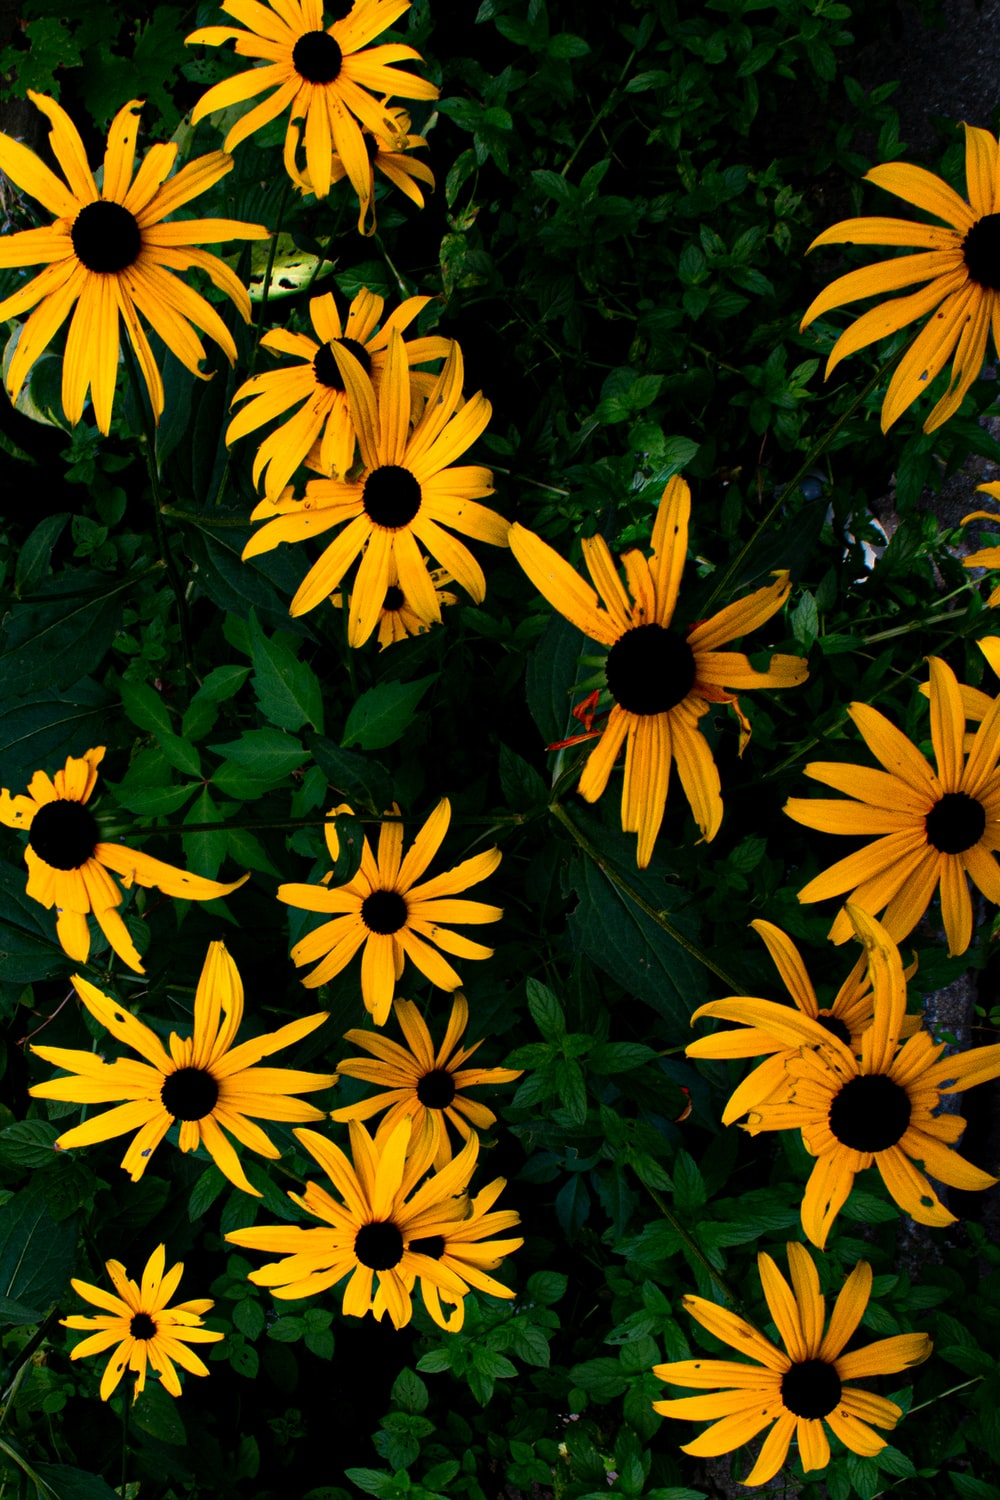 yellow and black flowers with green leaves